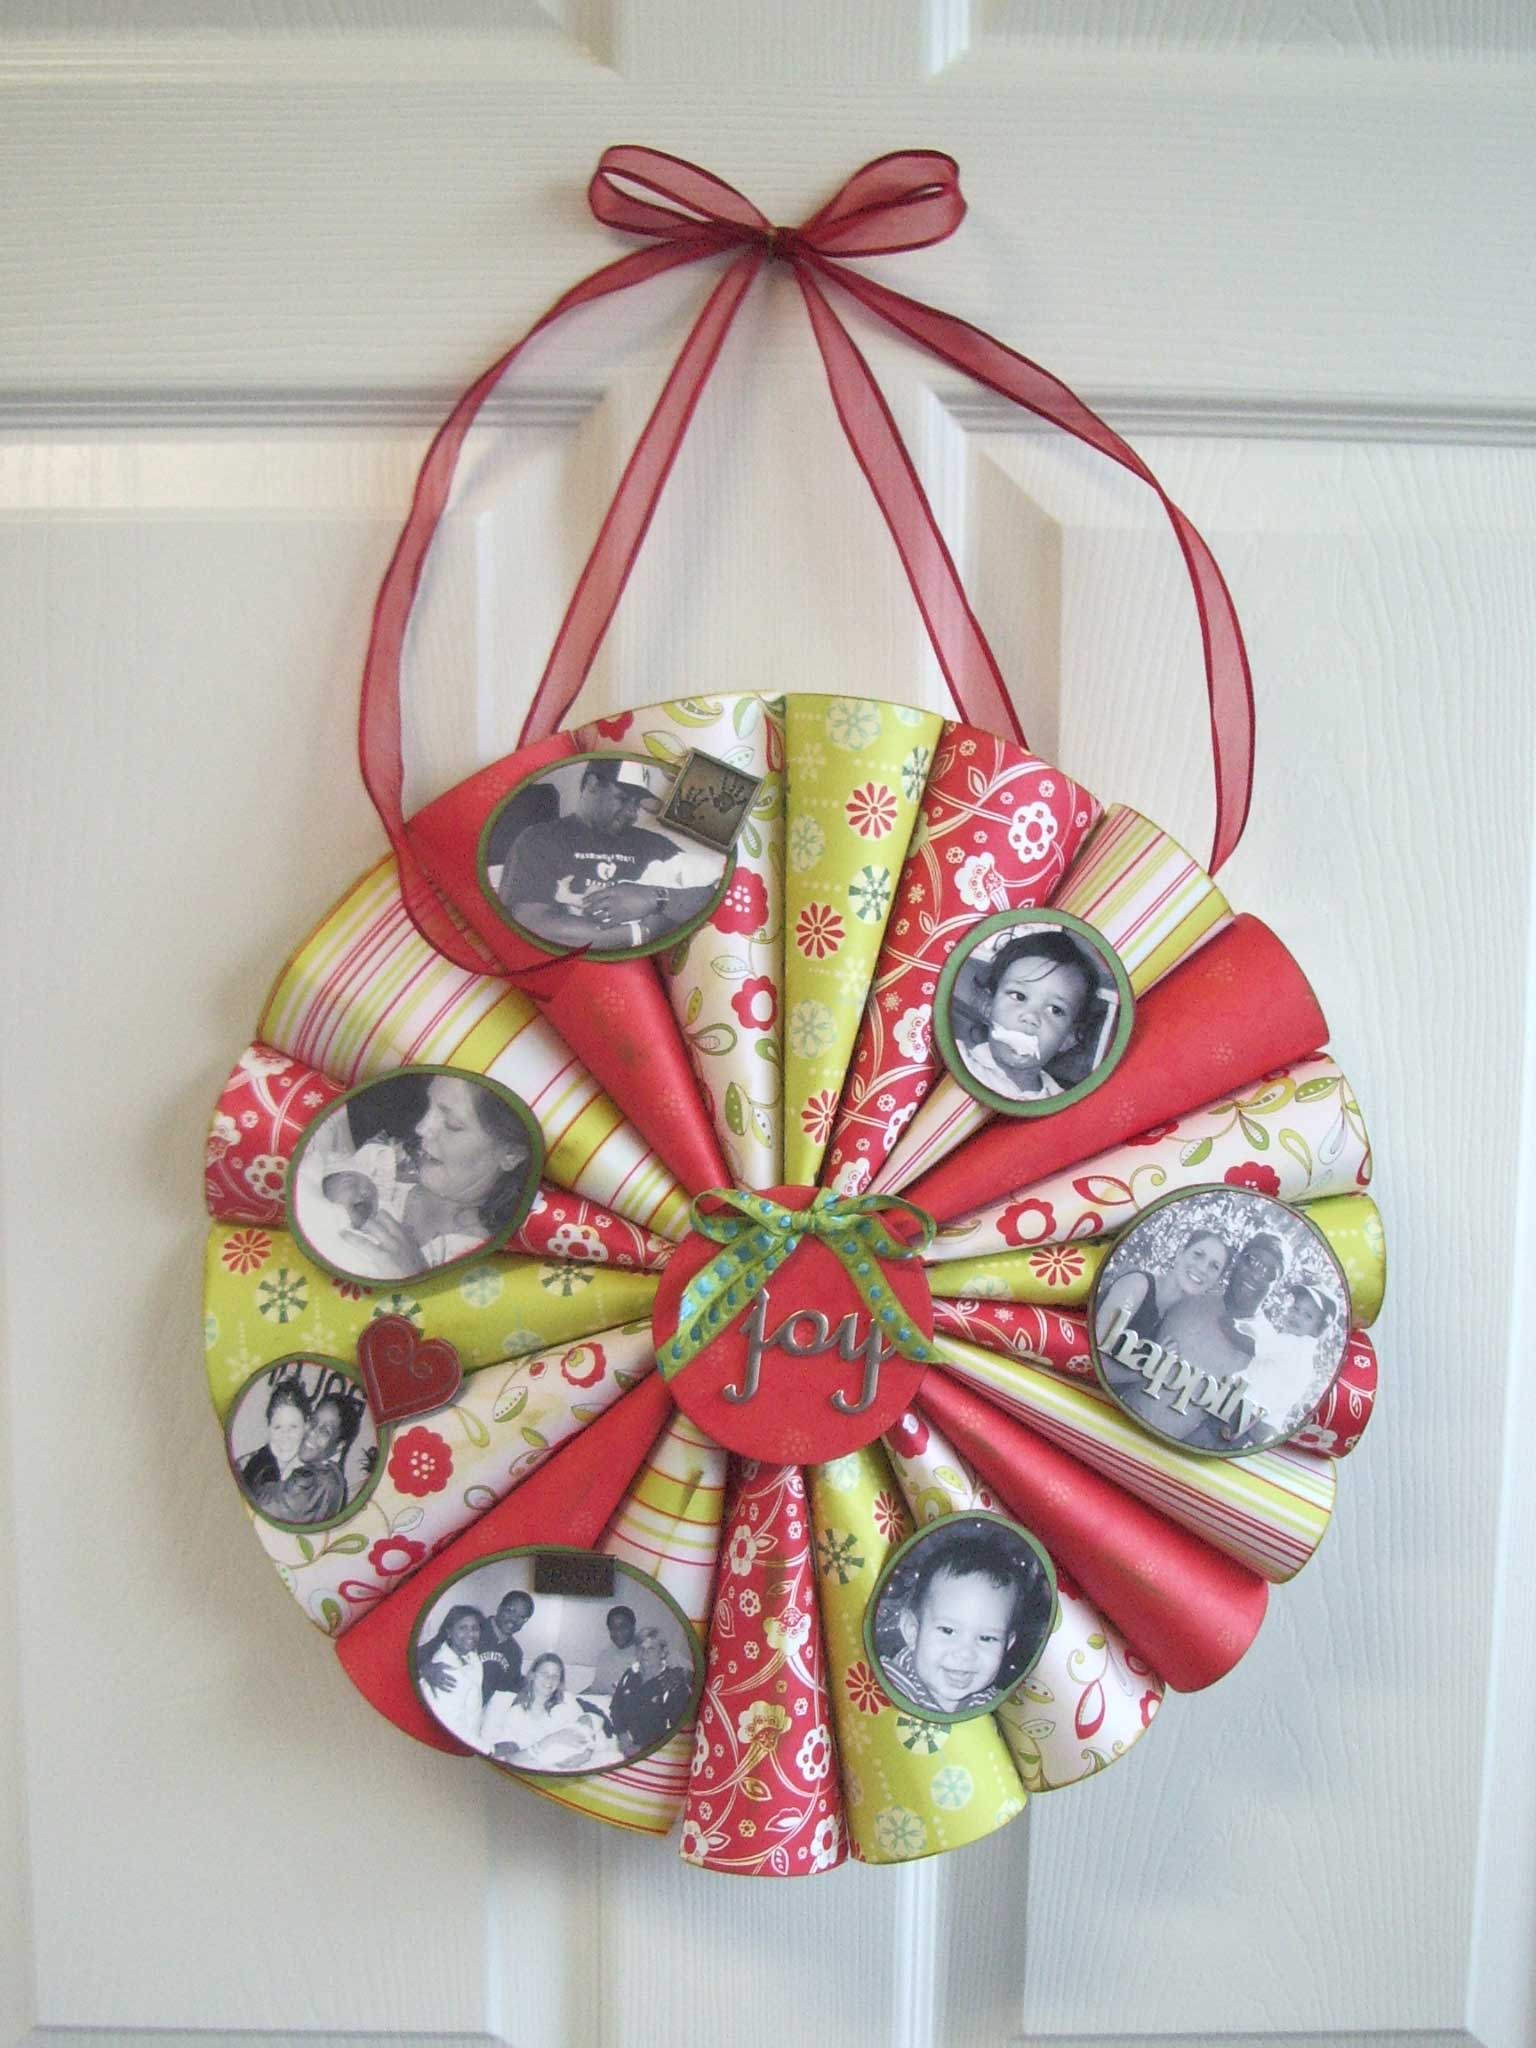 finished-photo-wreath.jpg